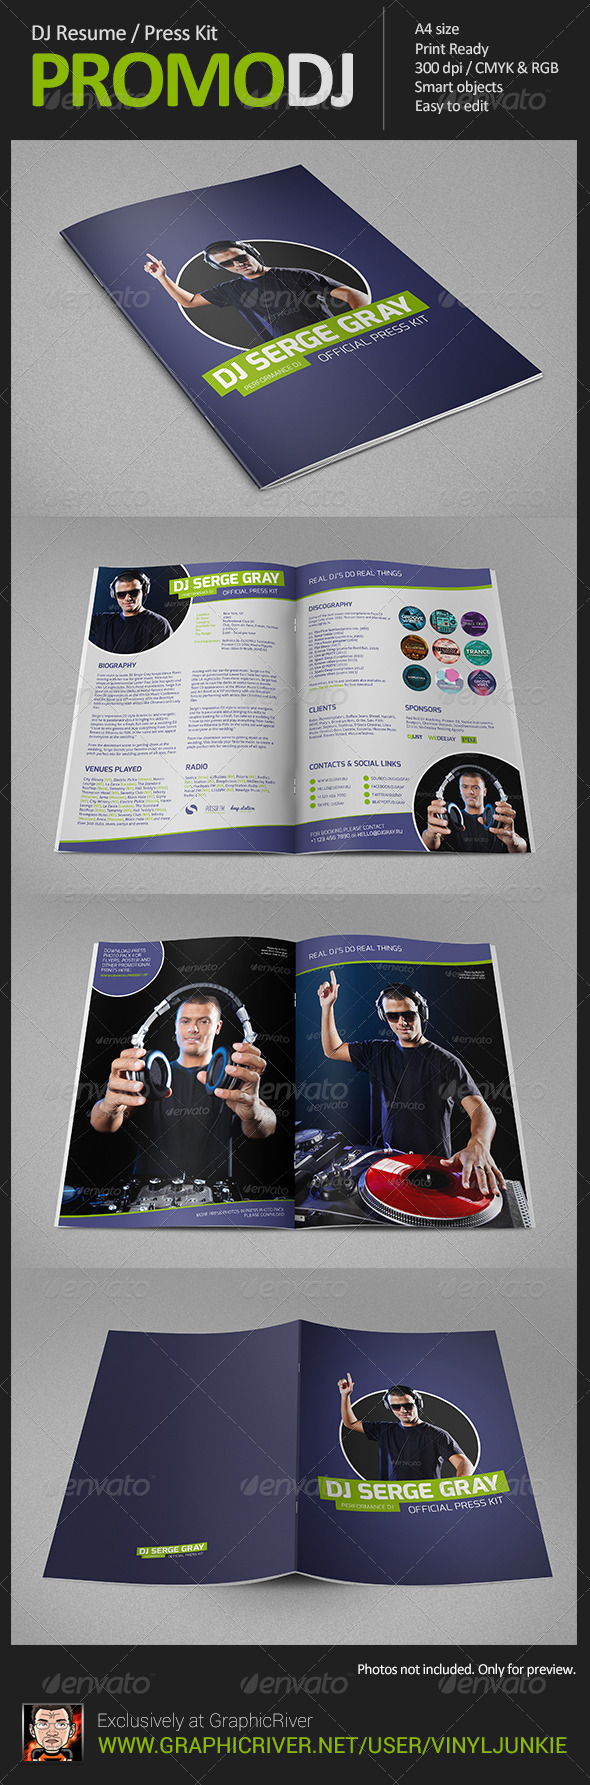 PromoDJ - DJ Resume (Press Kit) - Resumes Stationery